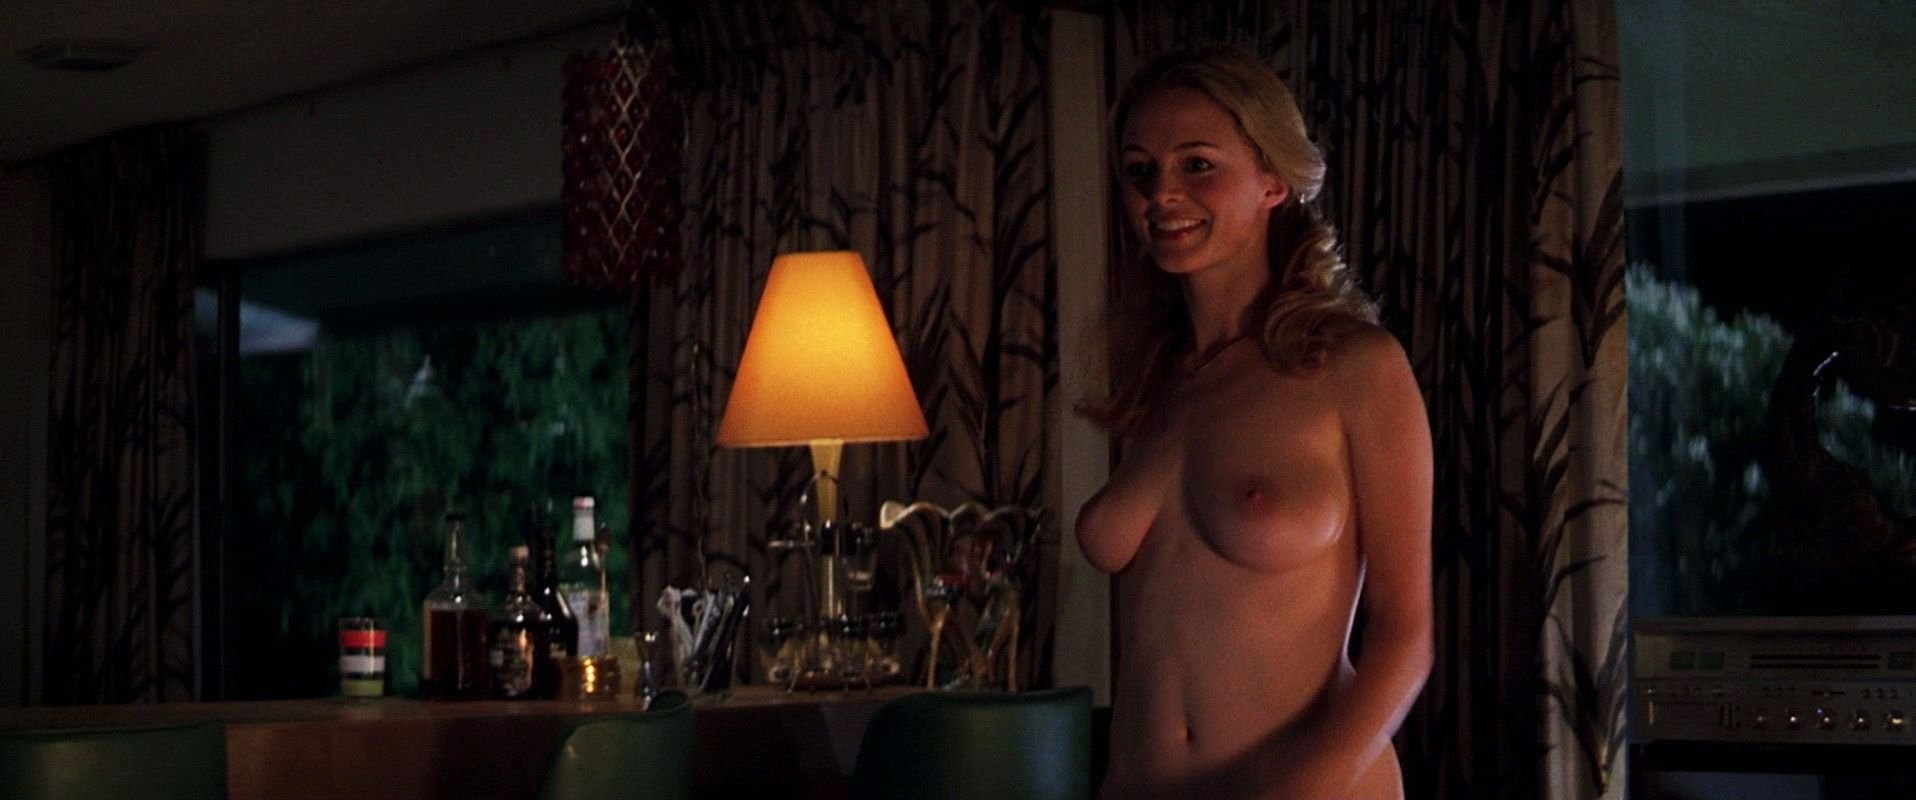 Boogie nights sex pics heather graham